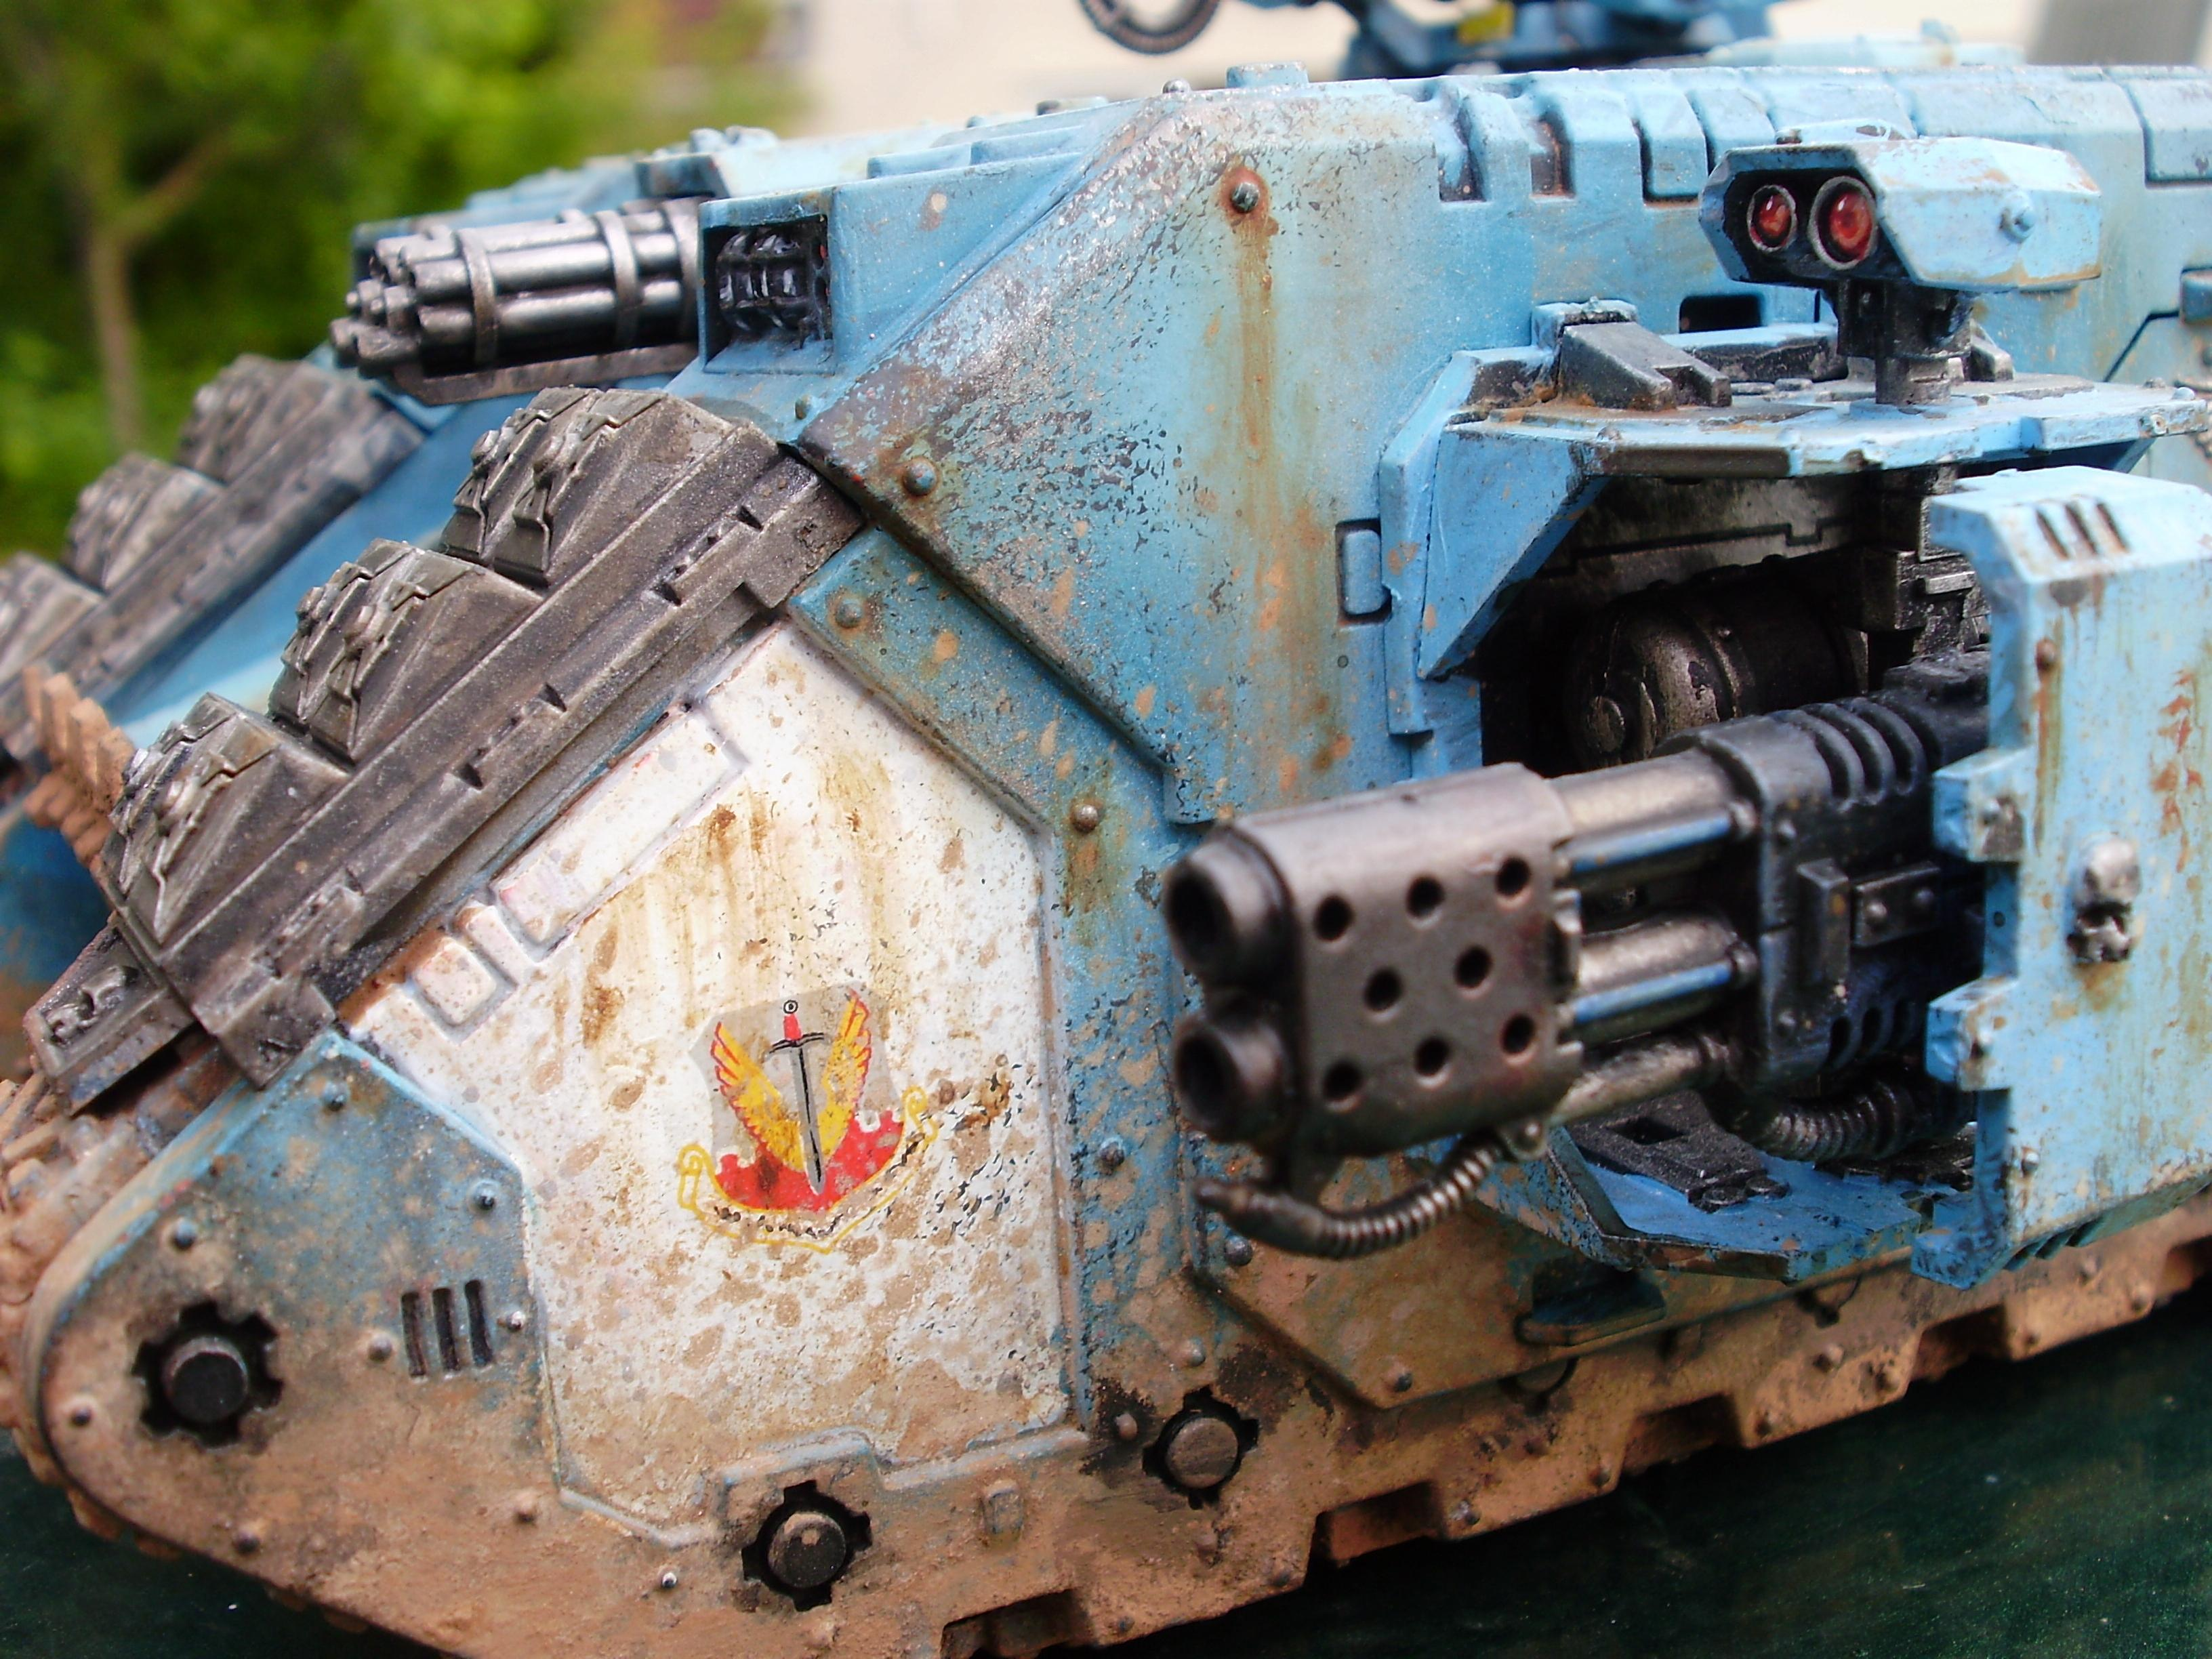 Close Up, Damage Detail, Dirty, Flamestorm Cannon, Land Raider Crusader, Mud, Space Marines, Sponson